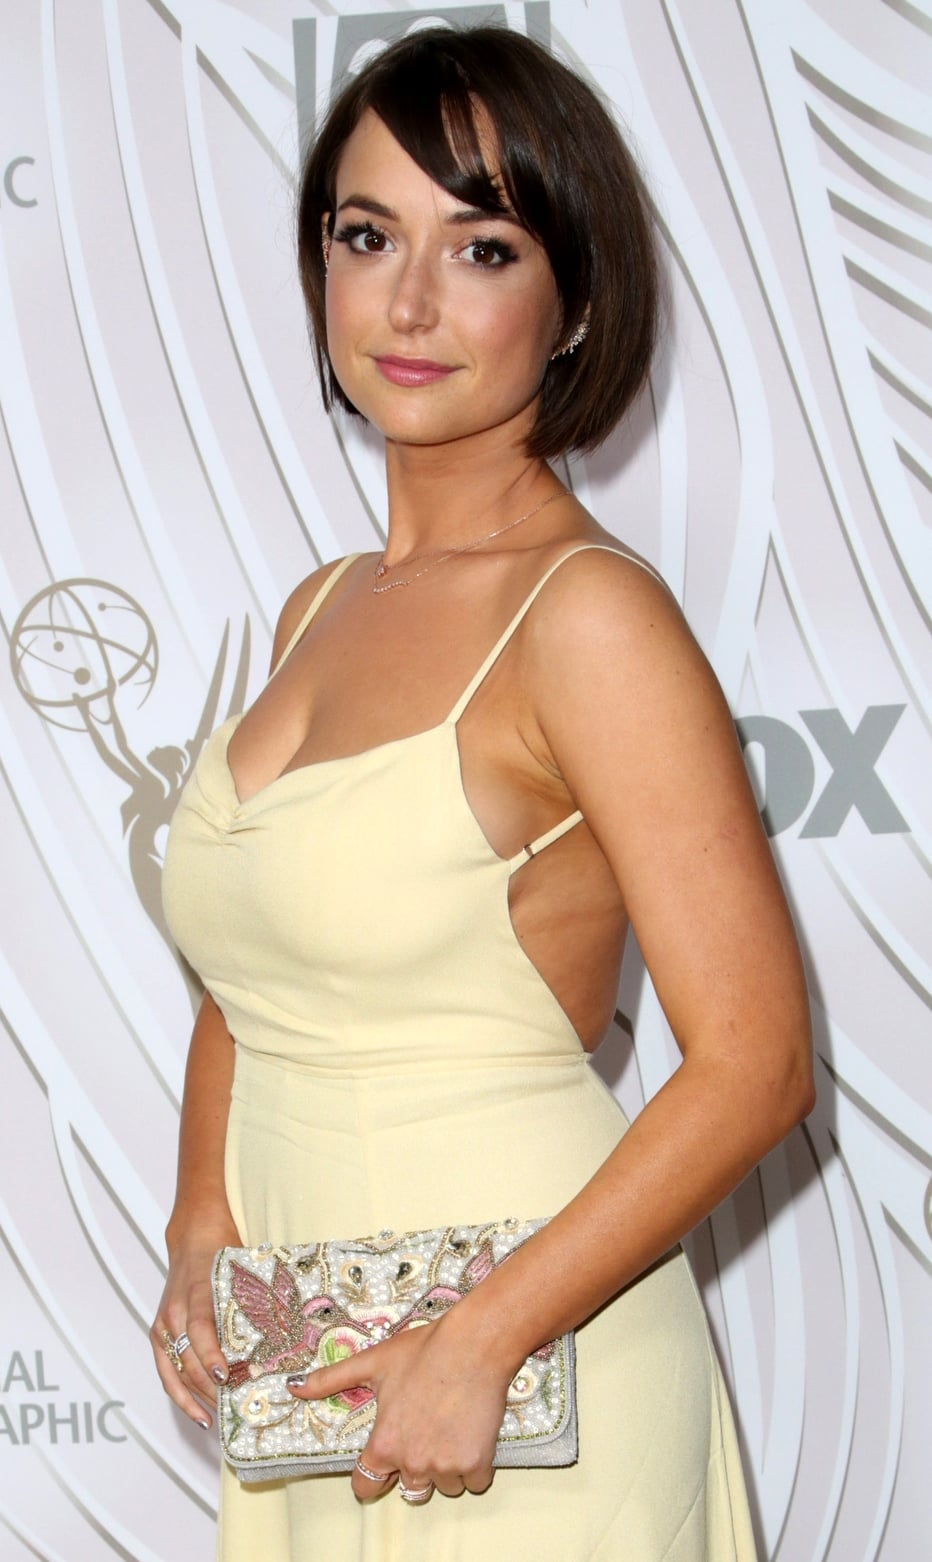 Actress Milana Vayntrub arrives at the FOX Broadcasting Company, Twentieth Century Fox Television, FX, and National Geographic 69th Primetime Emmy Awards After Party